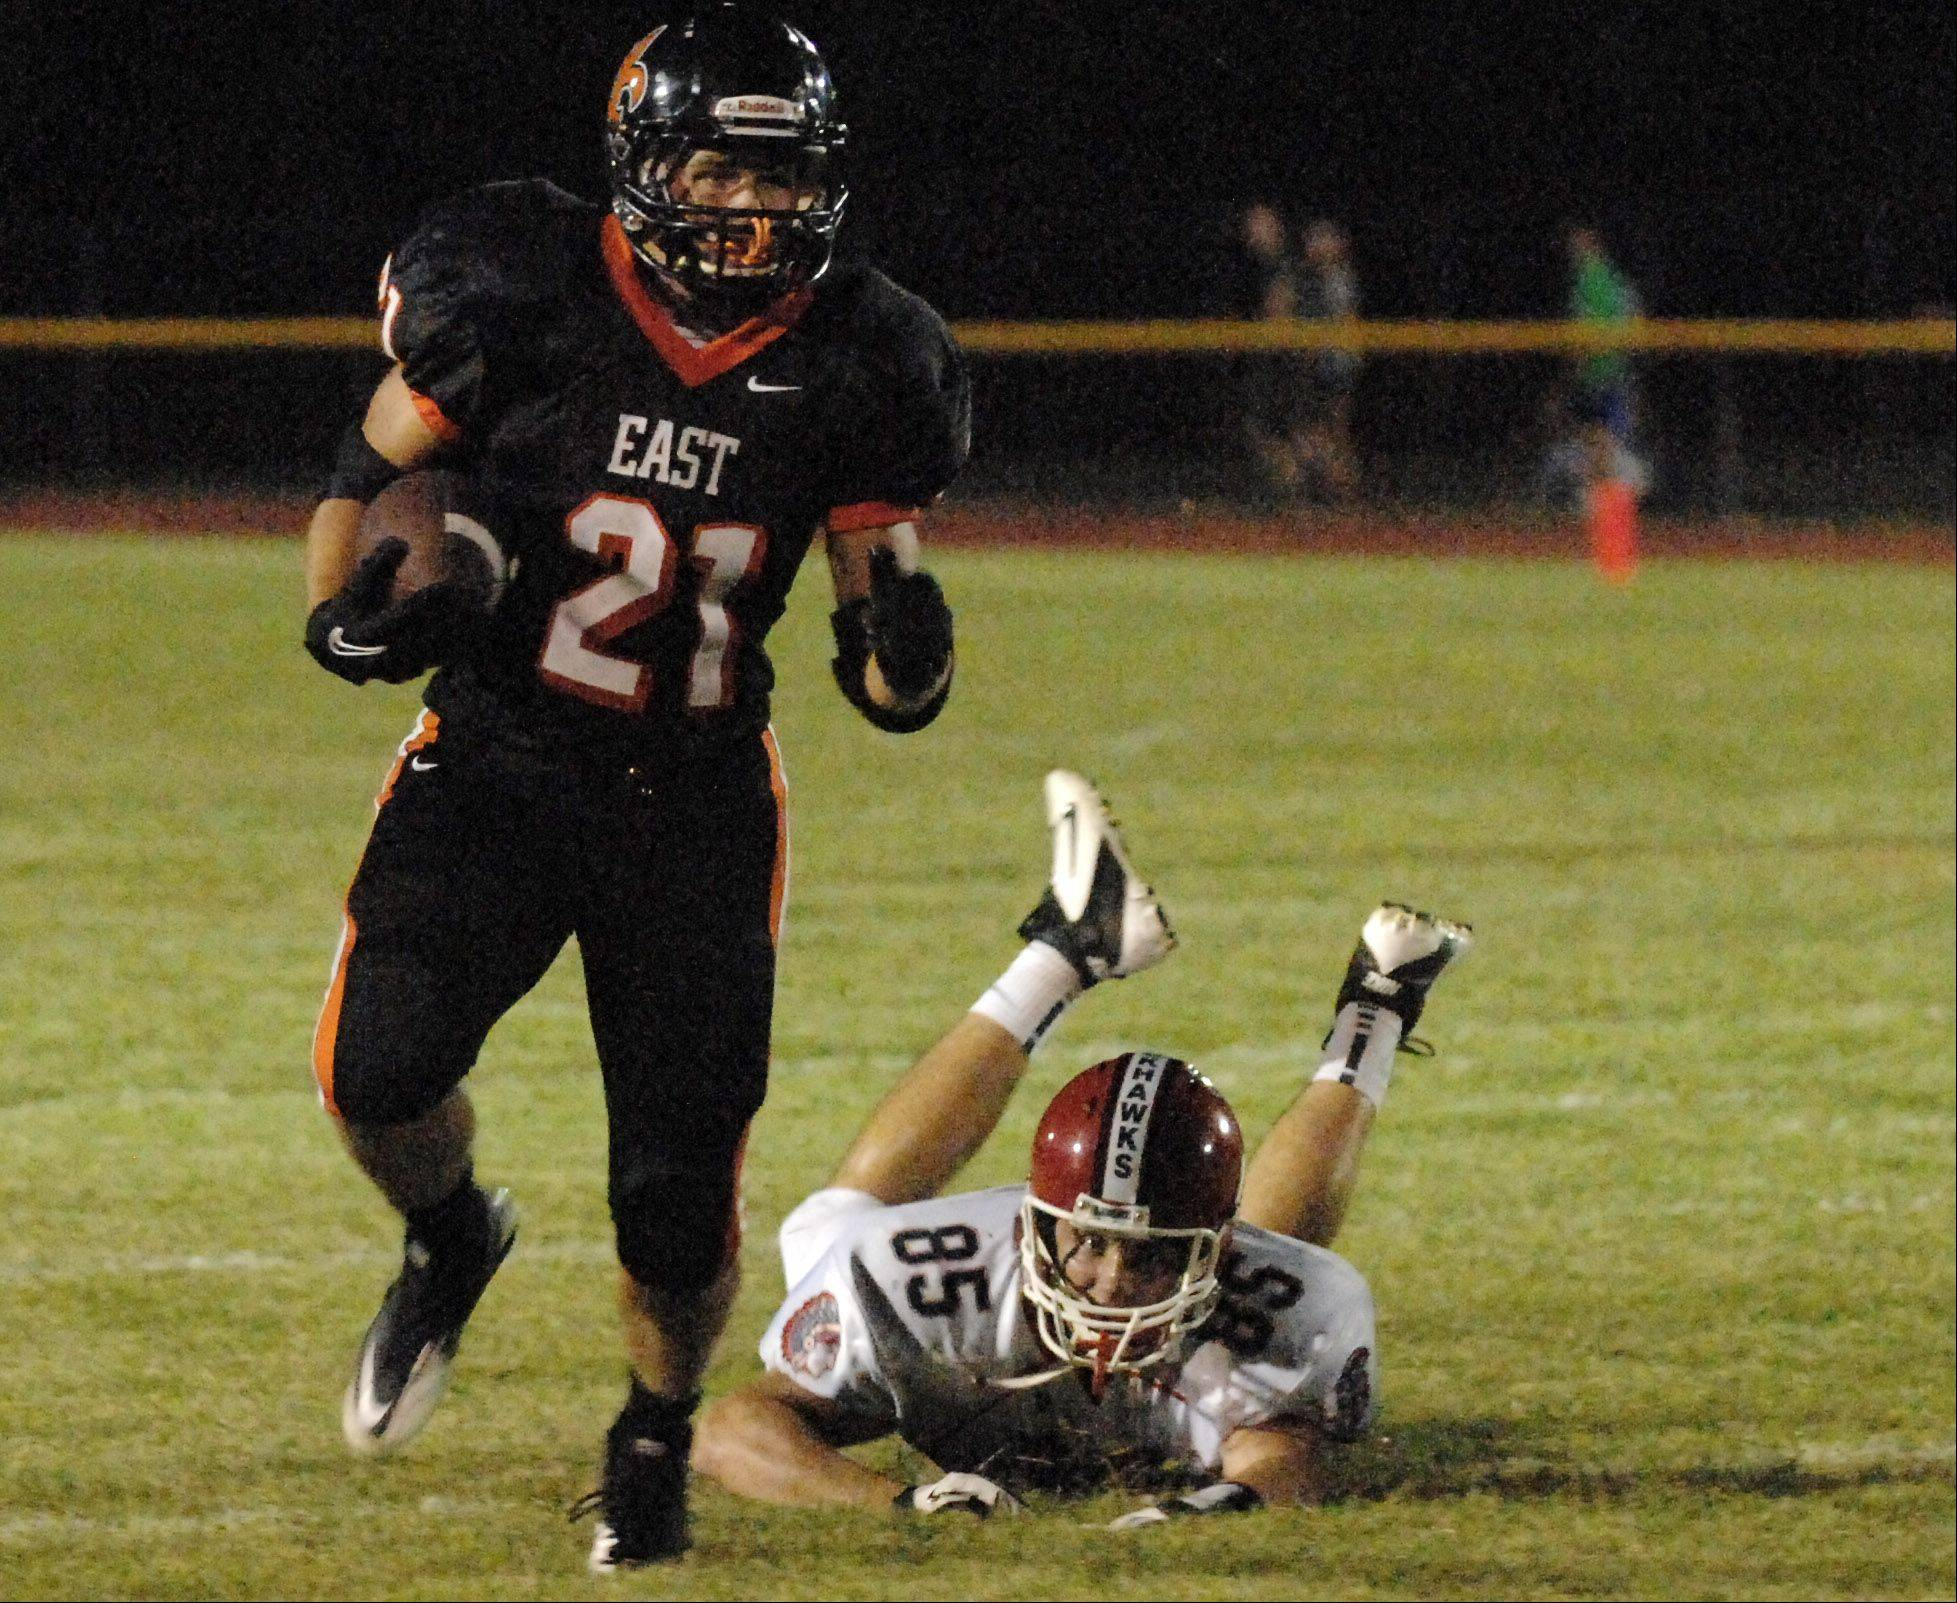 St. Charles East's Erik Anderson gets away from West Aurora's Spencer Thomas.